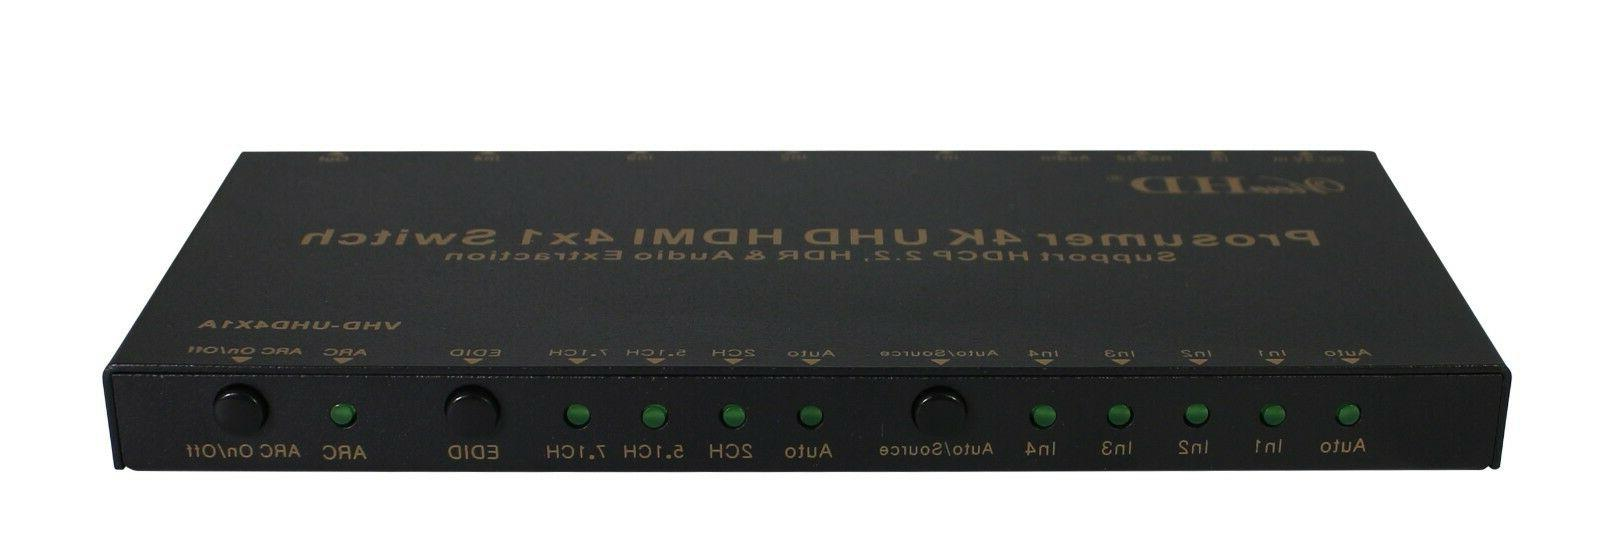 viewhd prosumer uhd 18gbps hdmi 4x1 switch support v20 hdcp